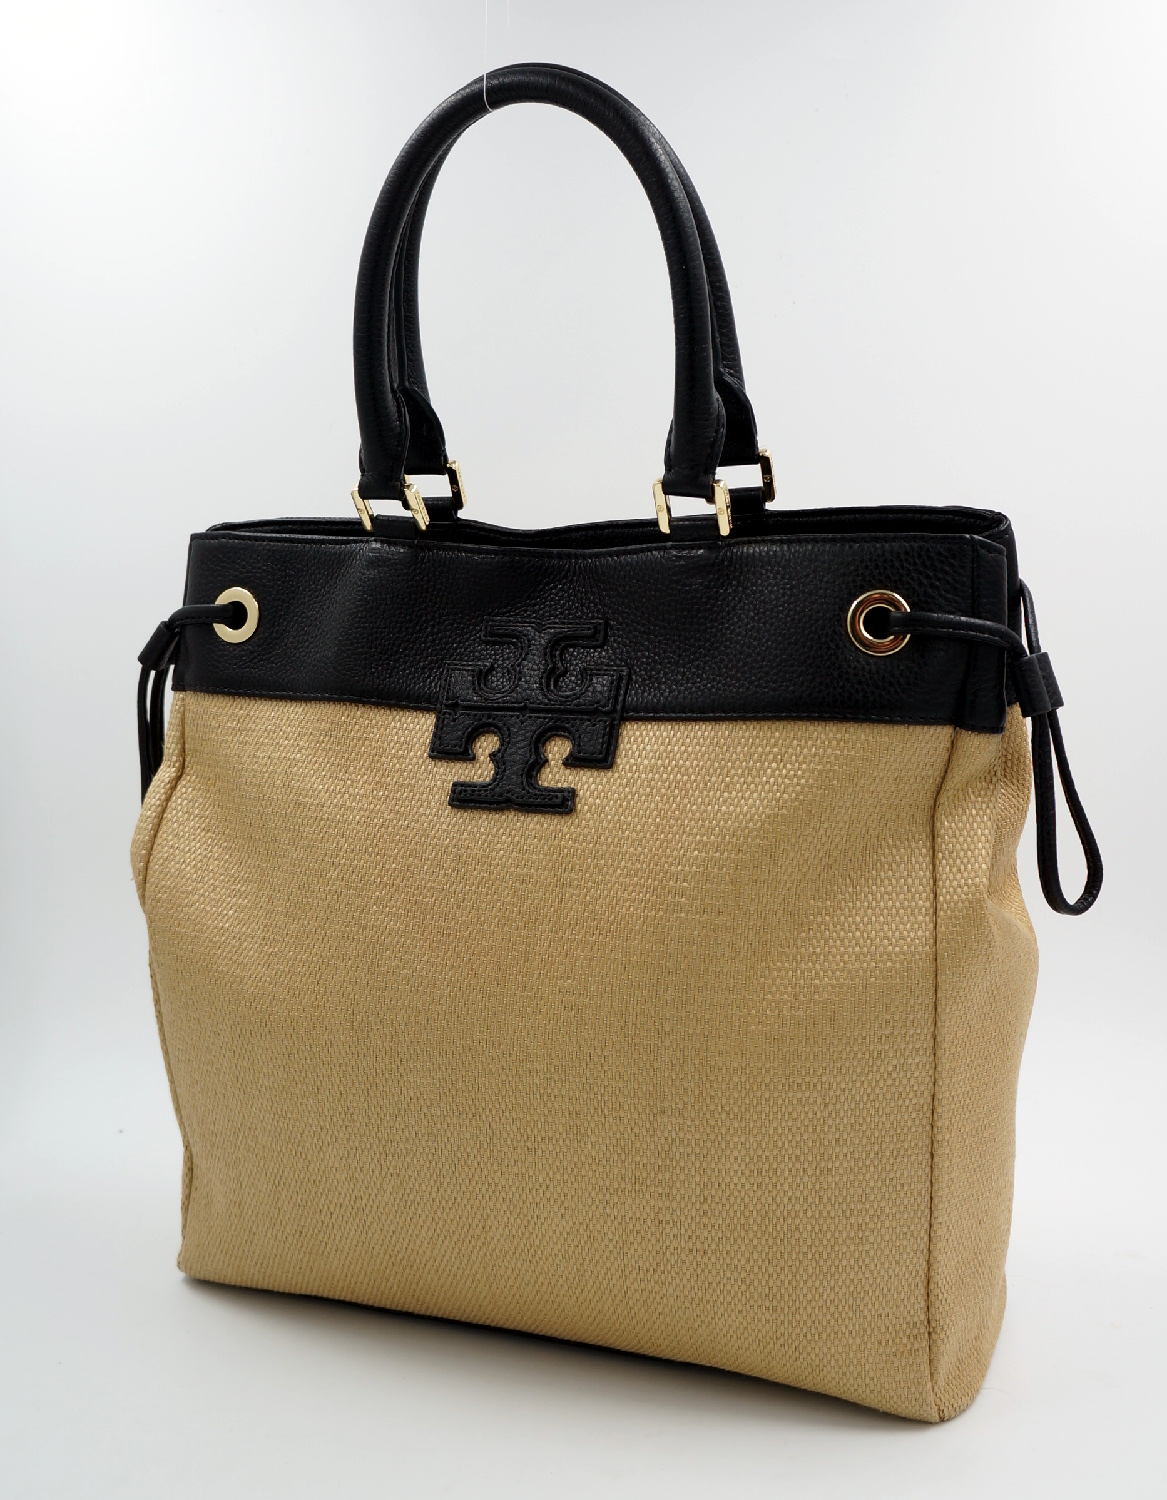 tory burch leder tasche straw bast schwarz beige uvp. Black Bedroom Furniture Sets. Home Design Ideas